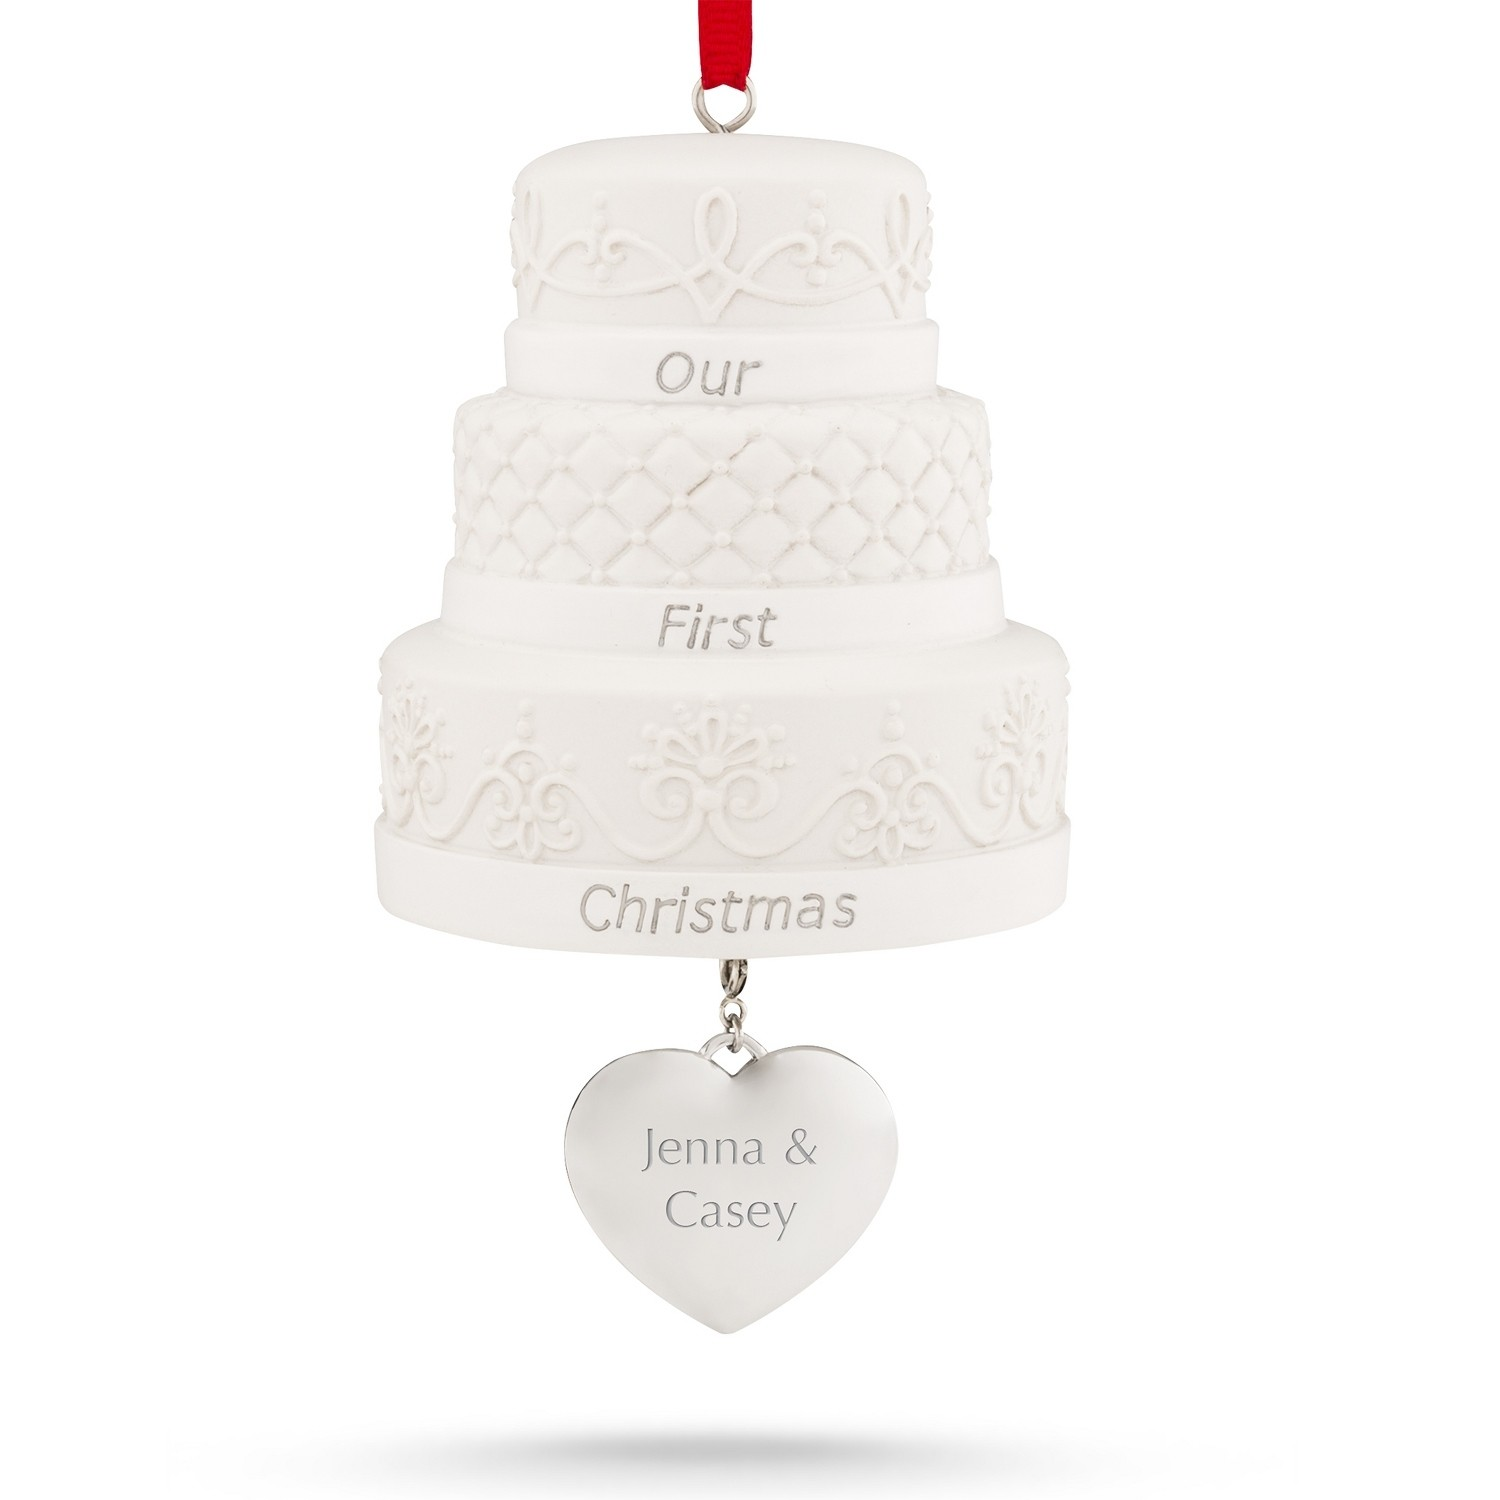 642b4511fd Wedding Gift Ideas Couples Won't Want To Return - Gift Guide - Livingly